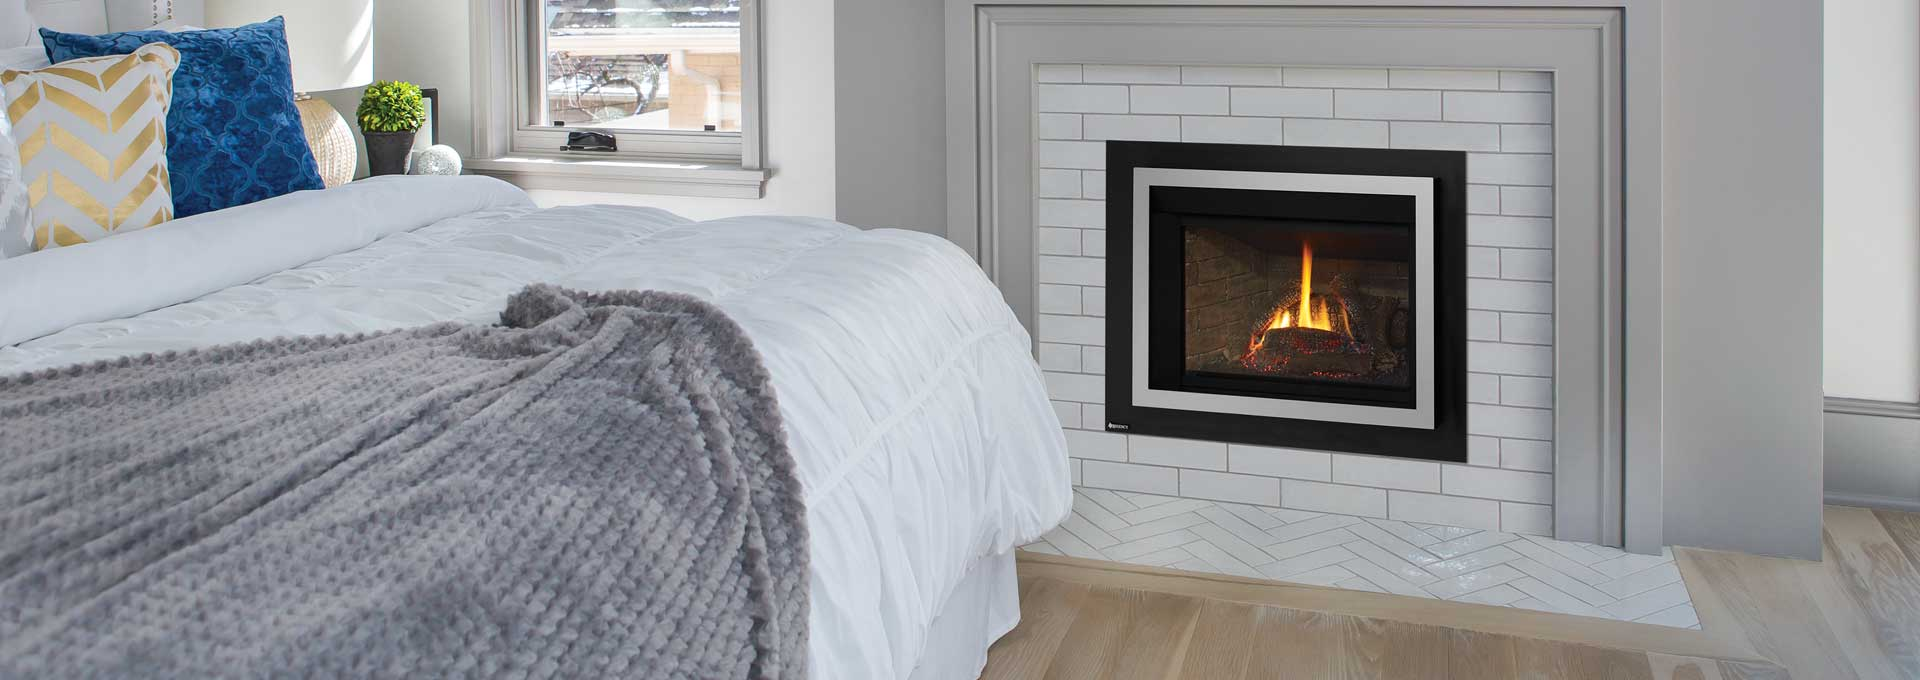 Convert Fireplace To Gas Burning Top 11 Gas Fireplace Insert Trends Of 2018